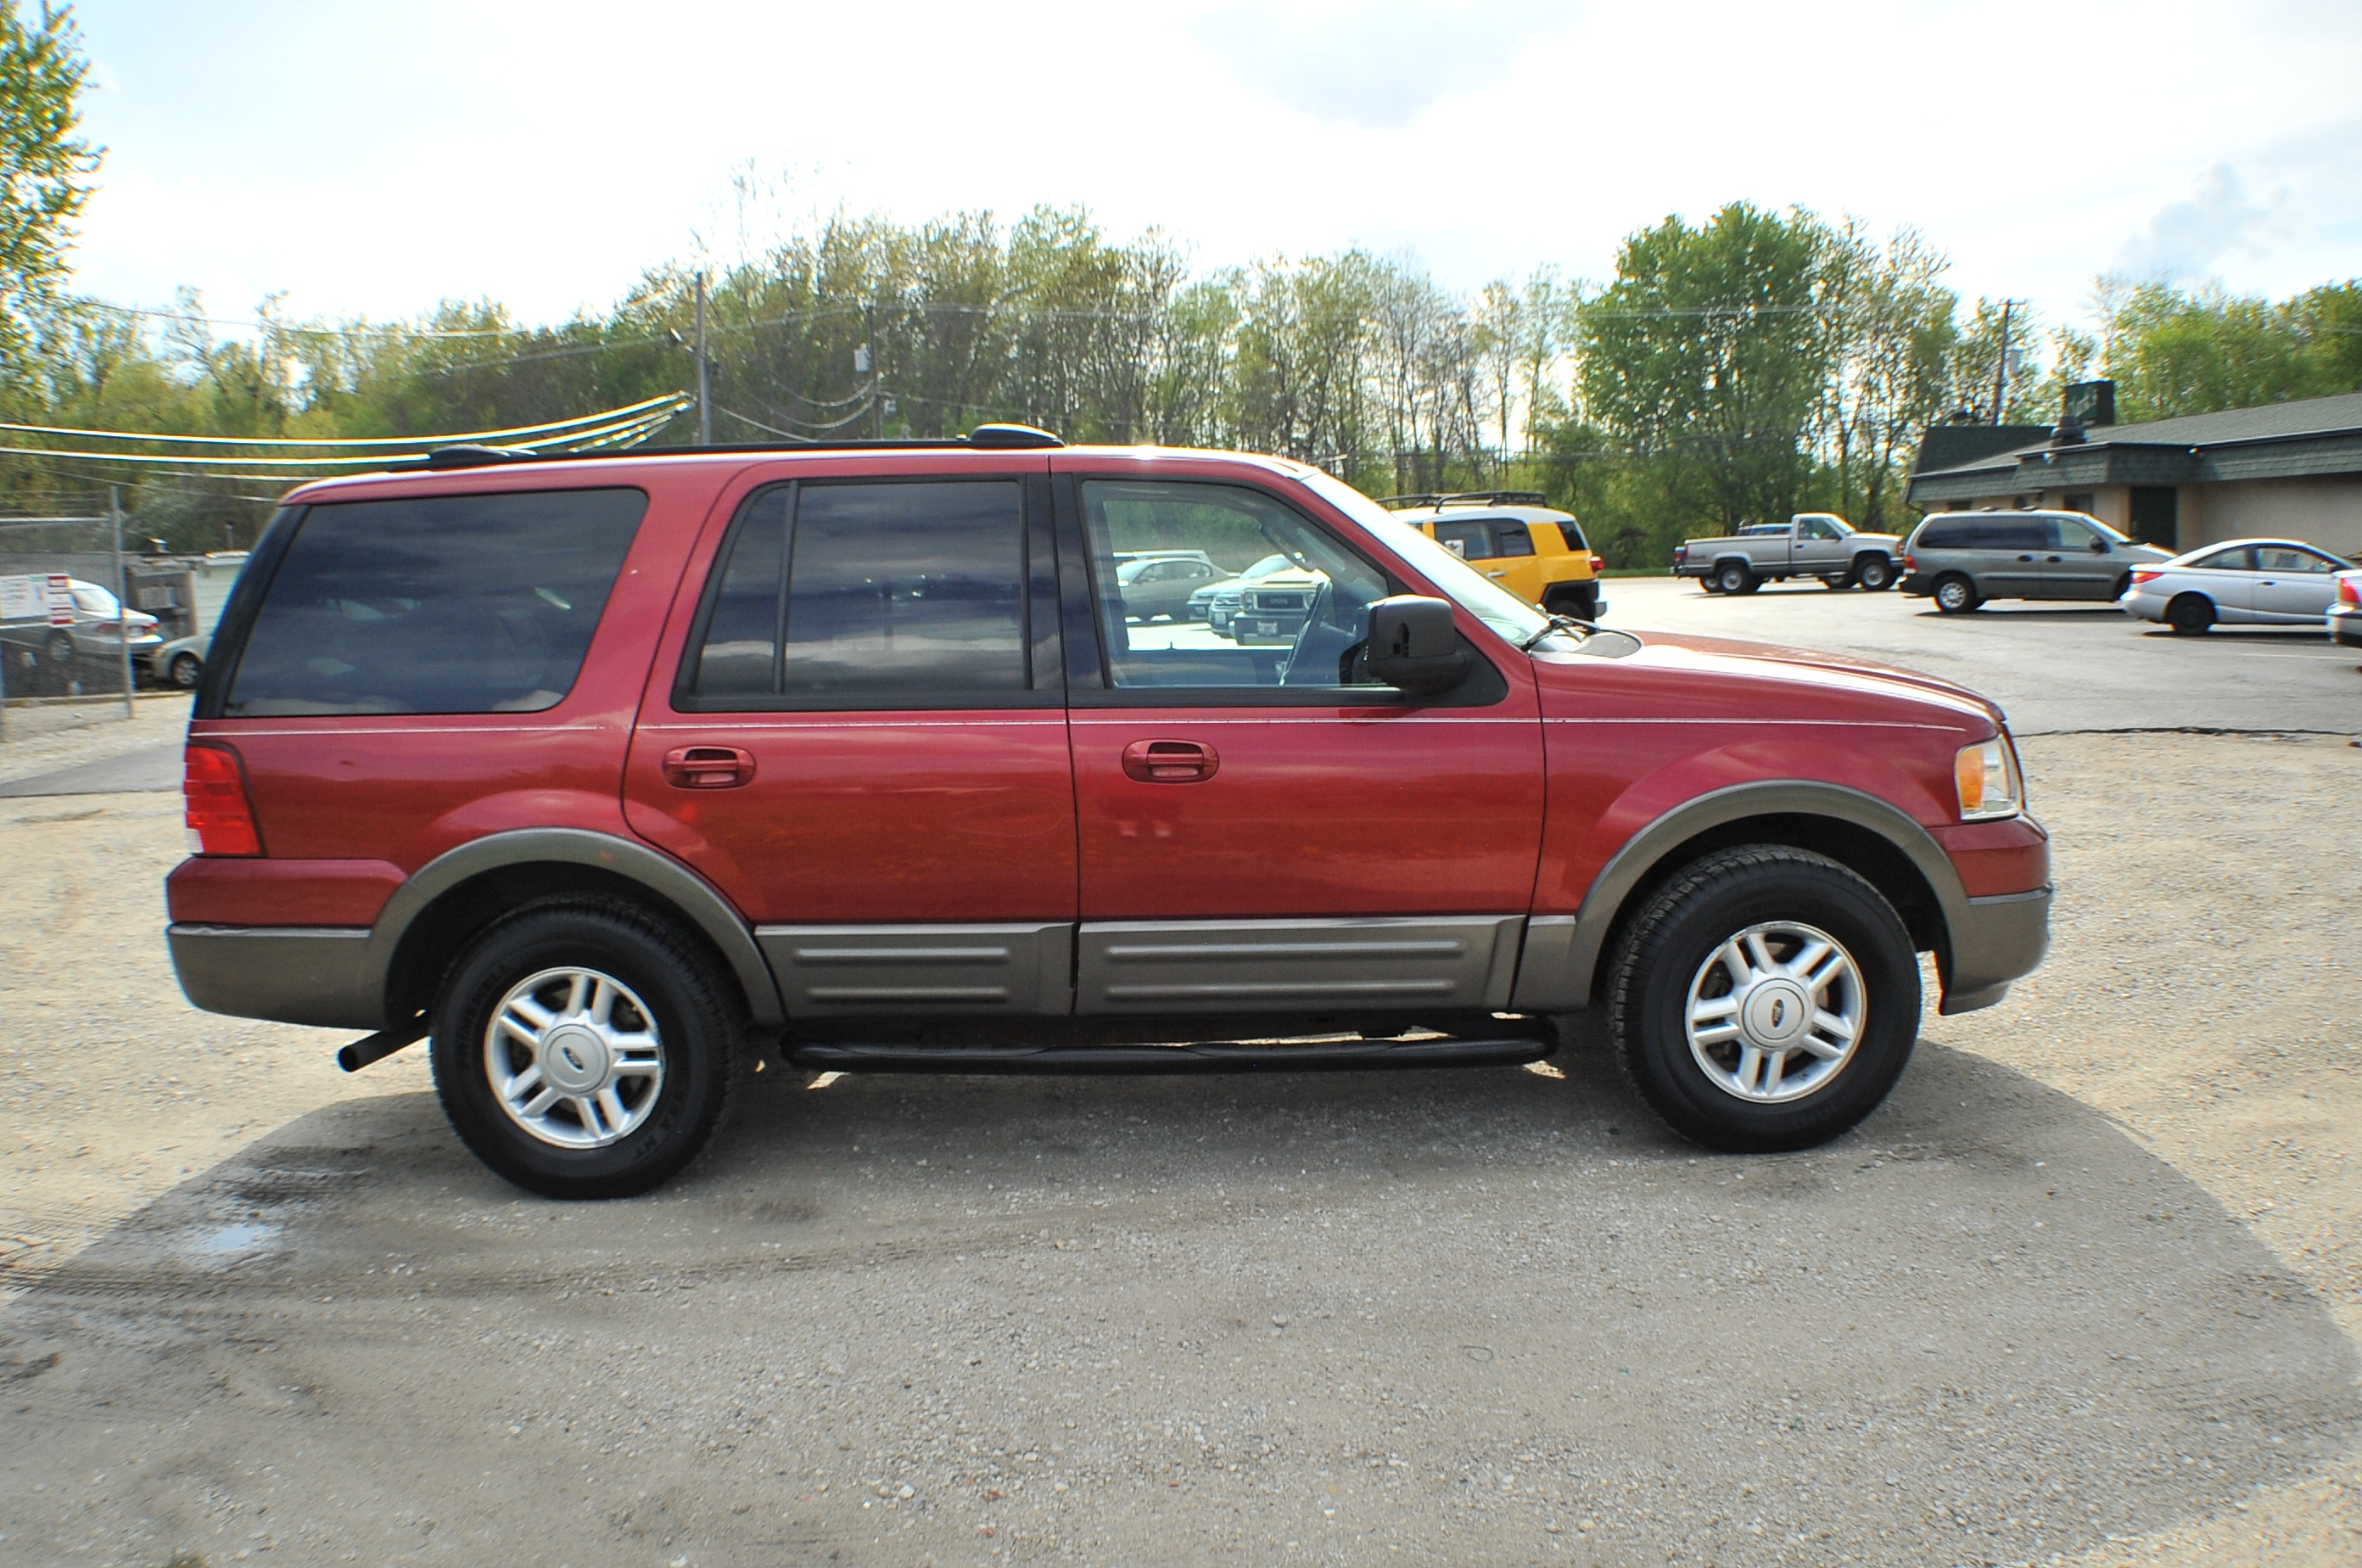 nc nissan used king el auto kernersville dodge expedition larger ranch the weekly ford new inventory